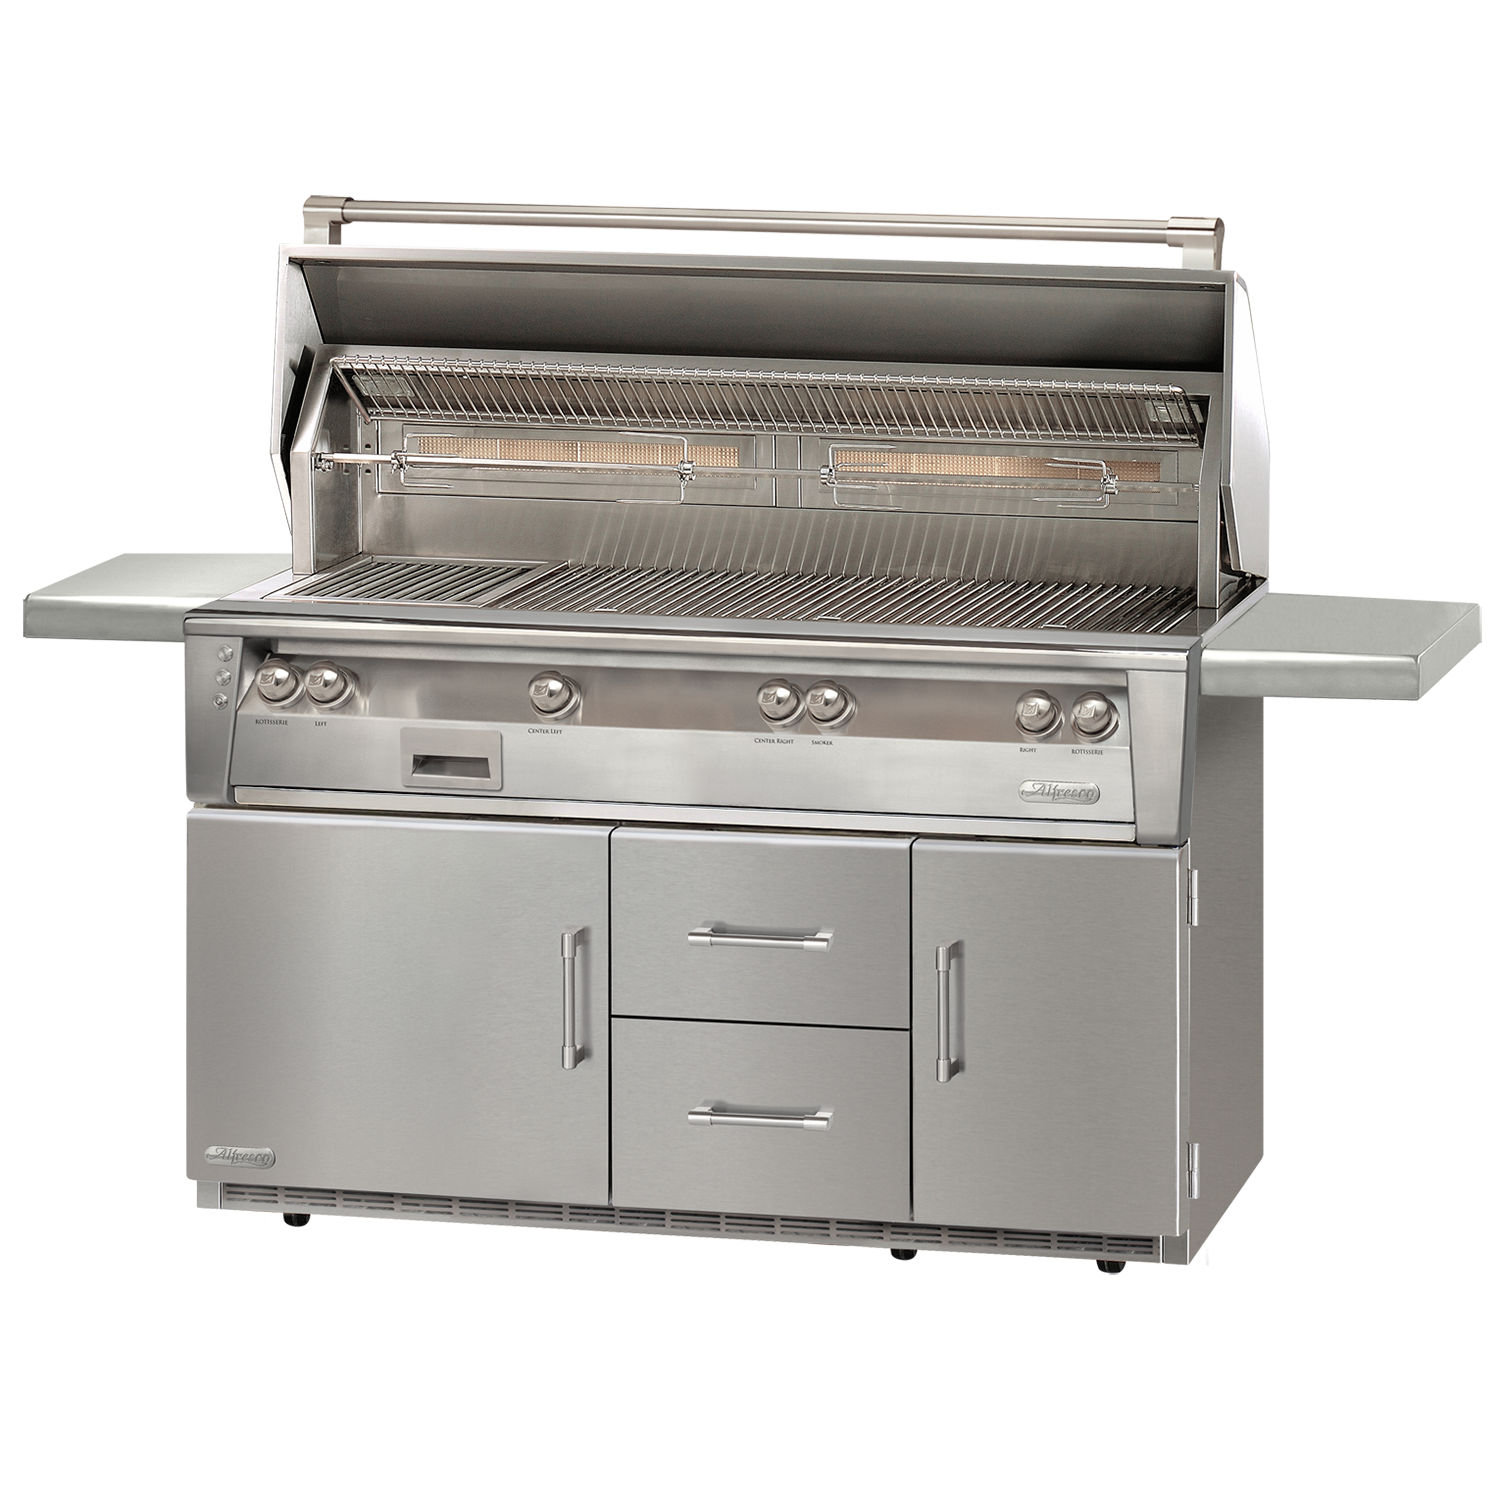 "56"" Alfresco ALXE Gas All Grill w/ Sear Zone & Rotisserie On Refrigerated Cart, Natural Gas"